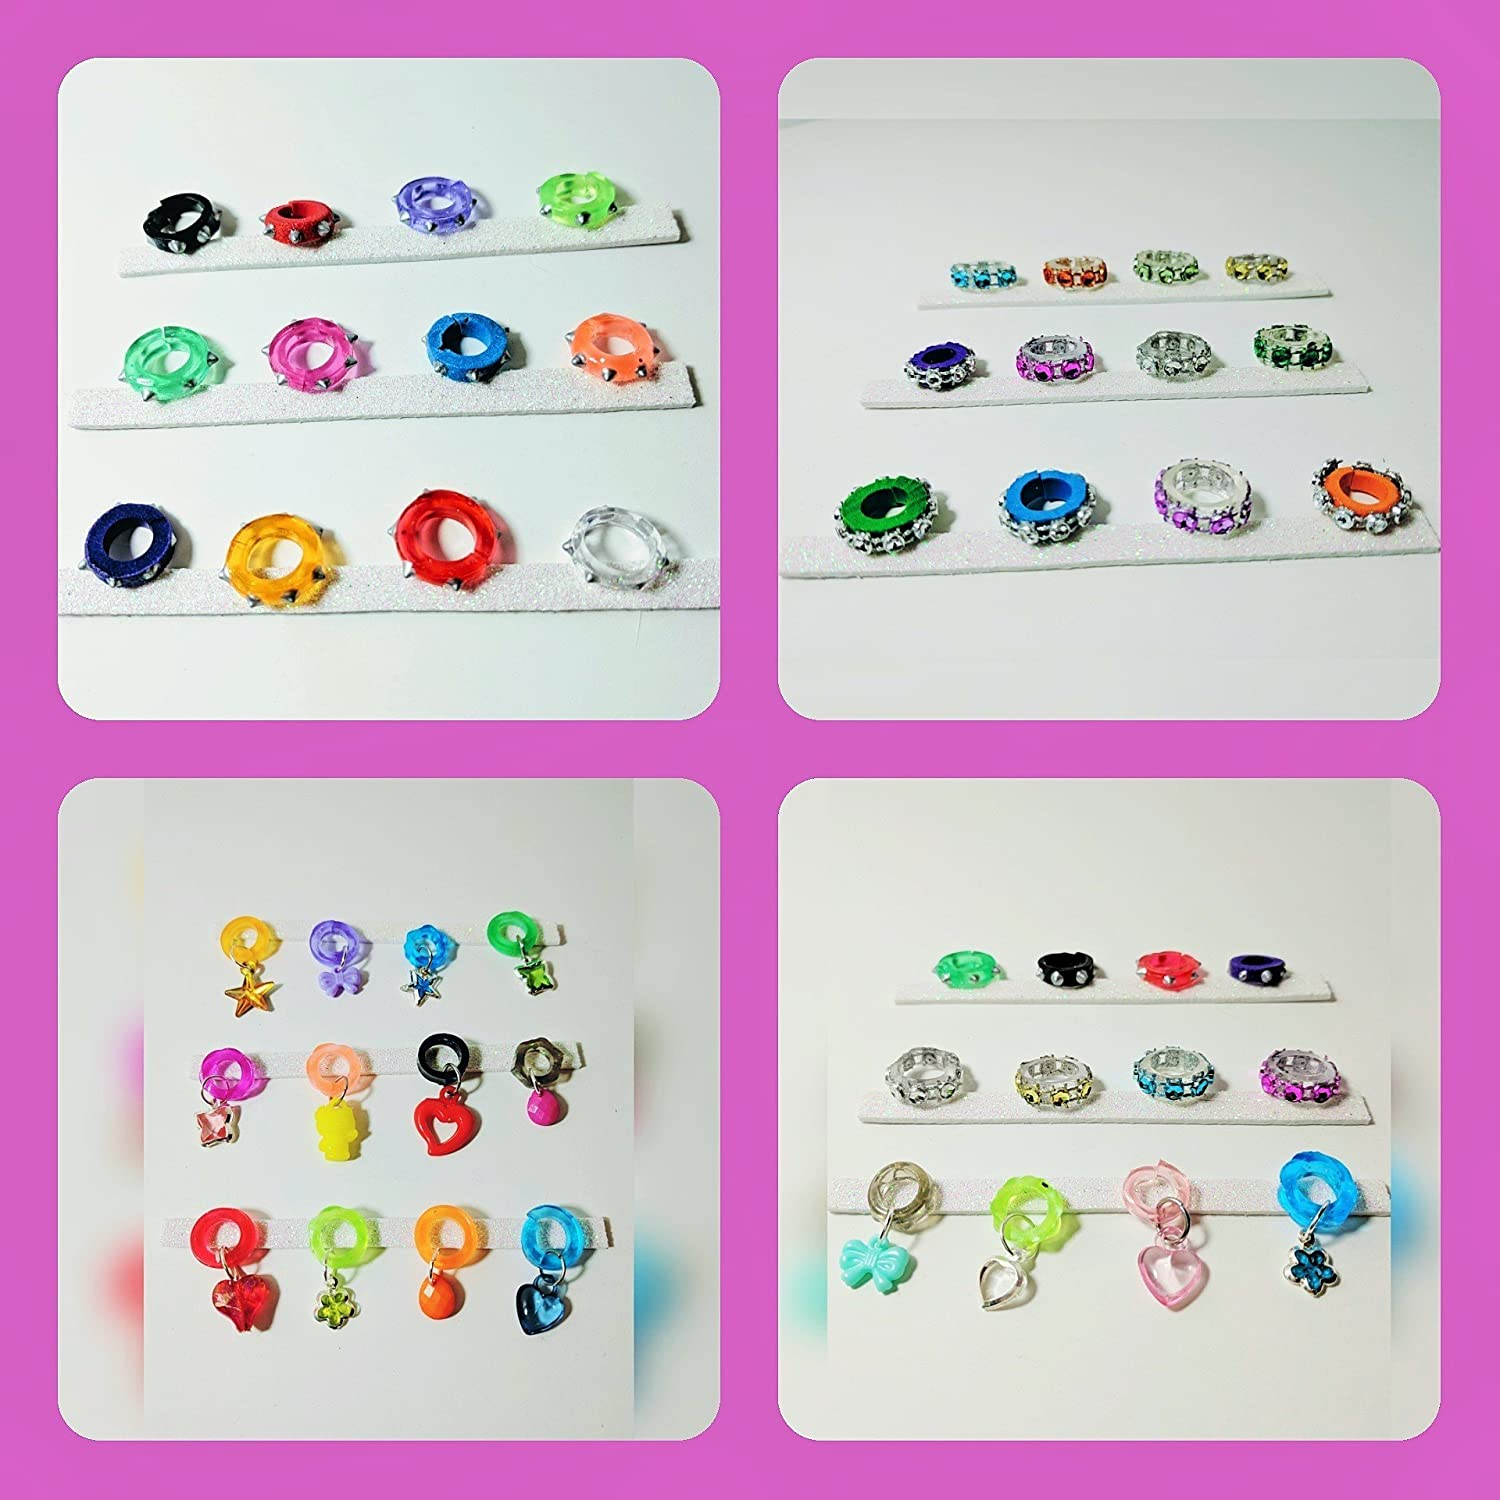 Littlest Pet Shop Custom Collars - Spiked, Jeweled, Charmed or Mixed - (12 PC) Randomly Selected LPS accessories (NO PETS)